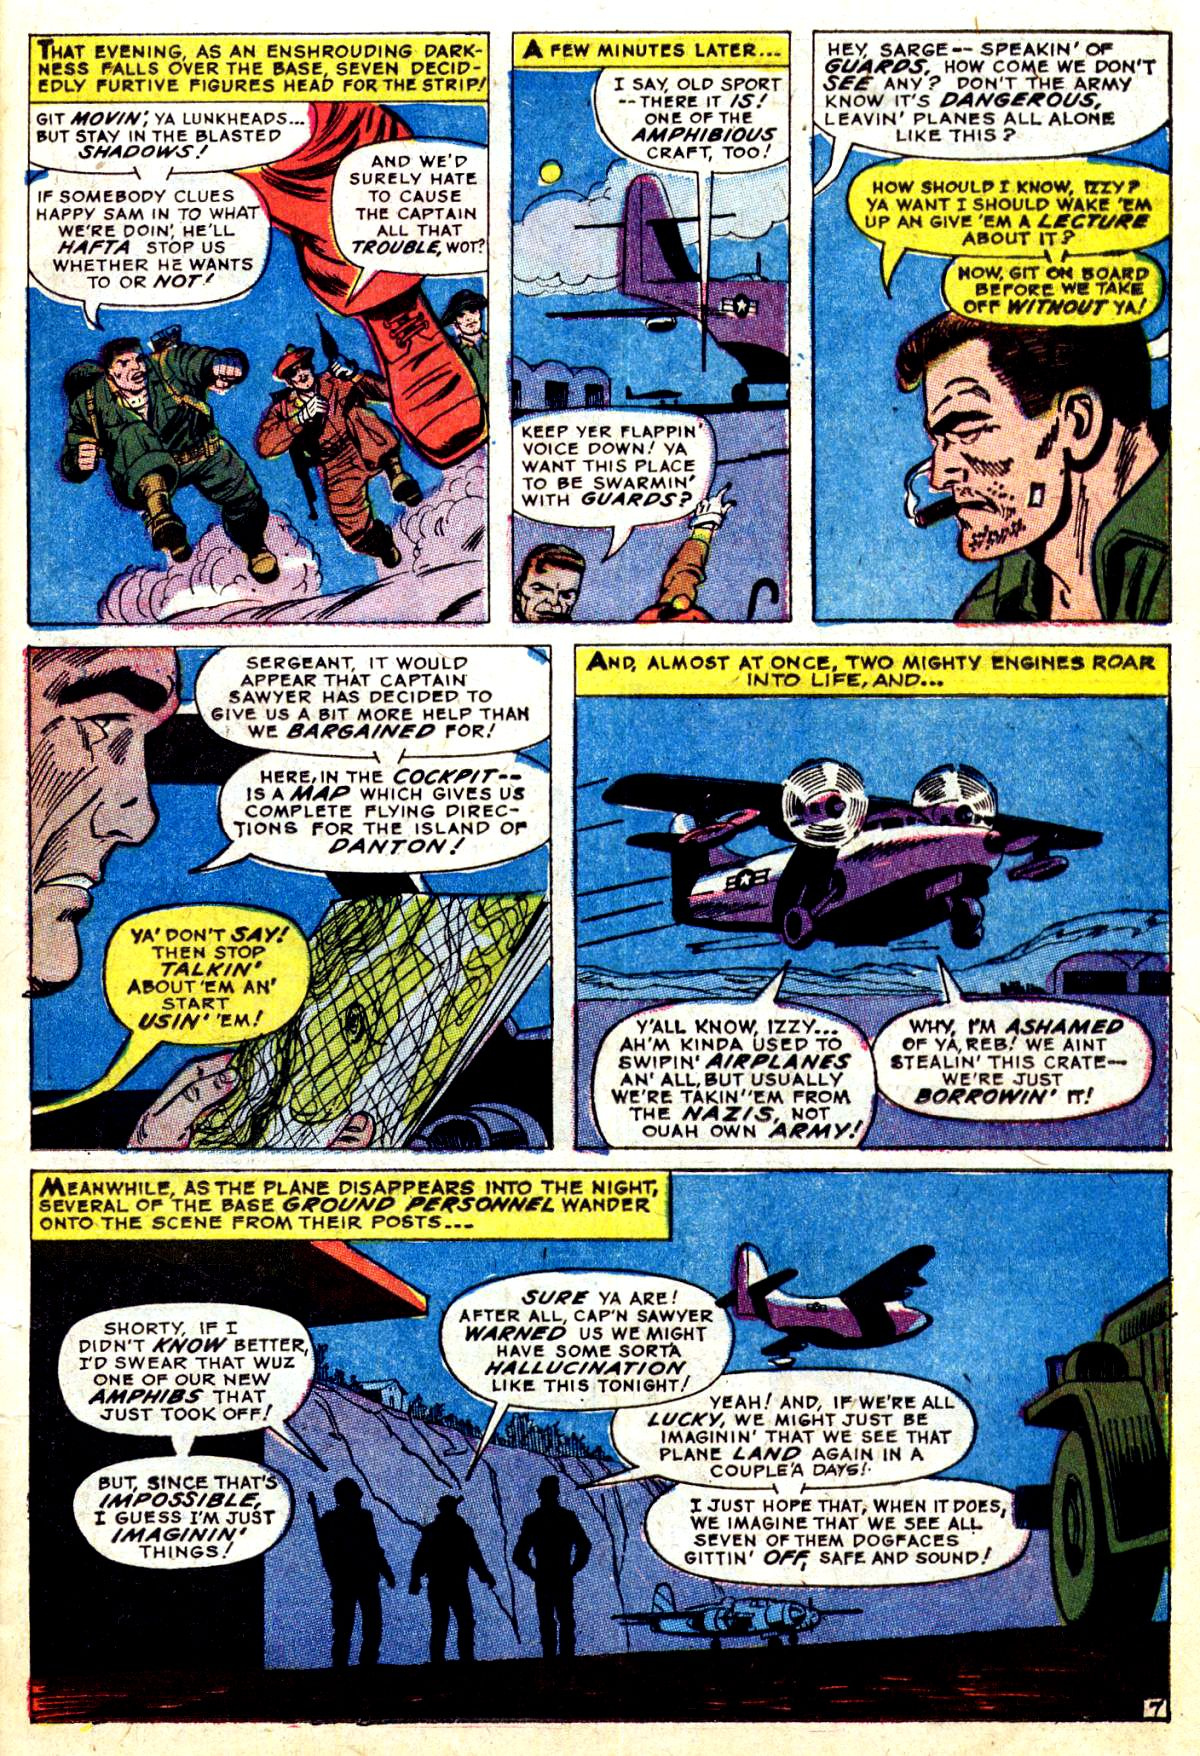 Read online Sgt. Fury comic -  Issue #38 - 11